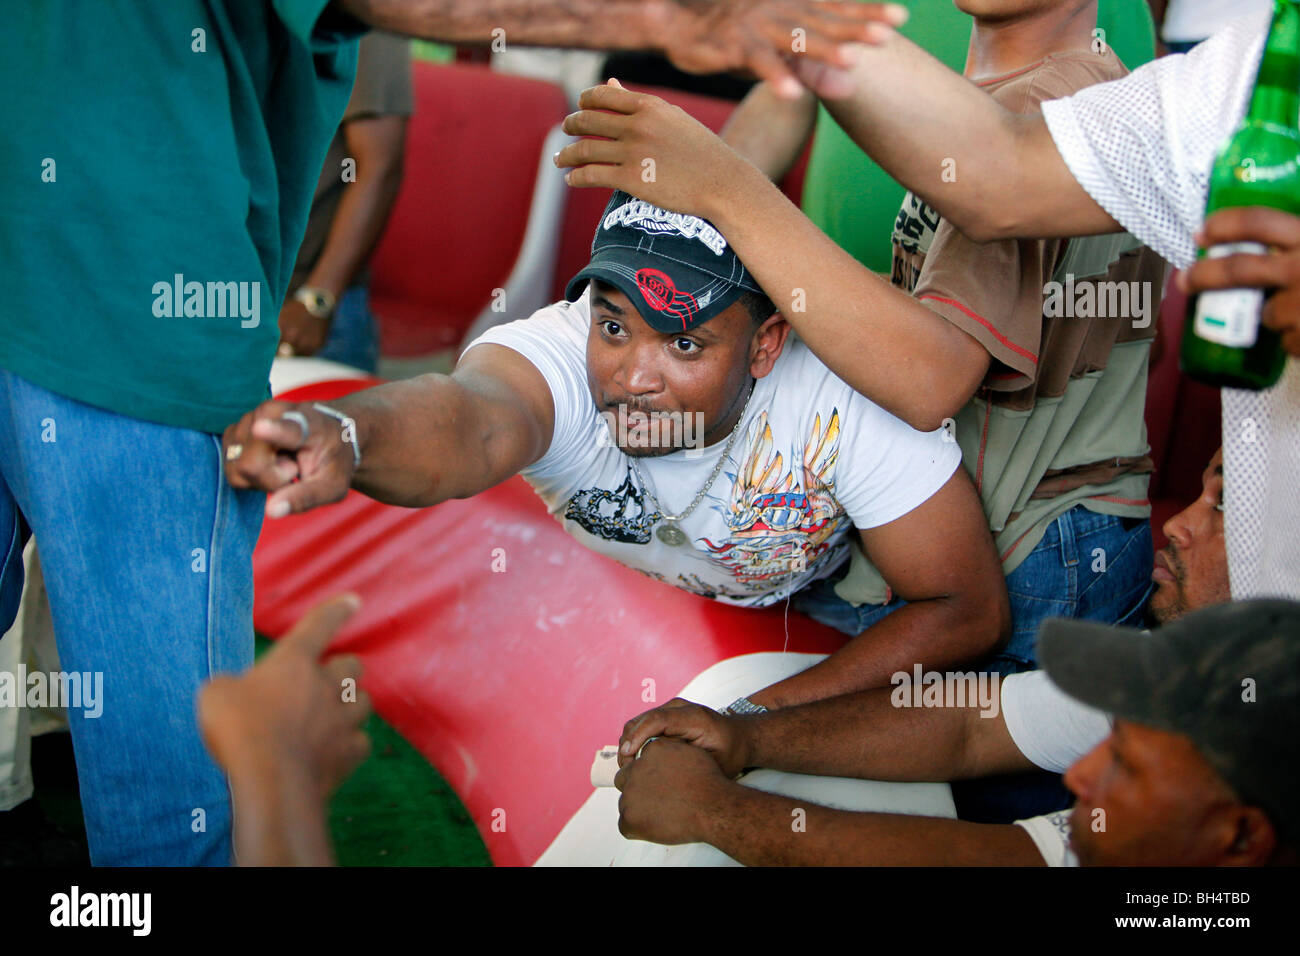 Men bet amongst each other with signals and gestures at a cockfighting ring, Dominican Republic Stock Photo